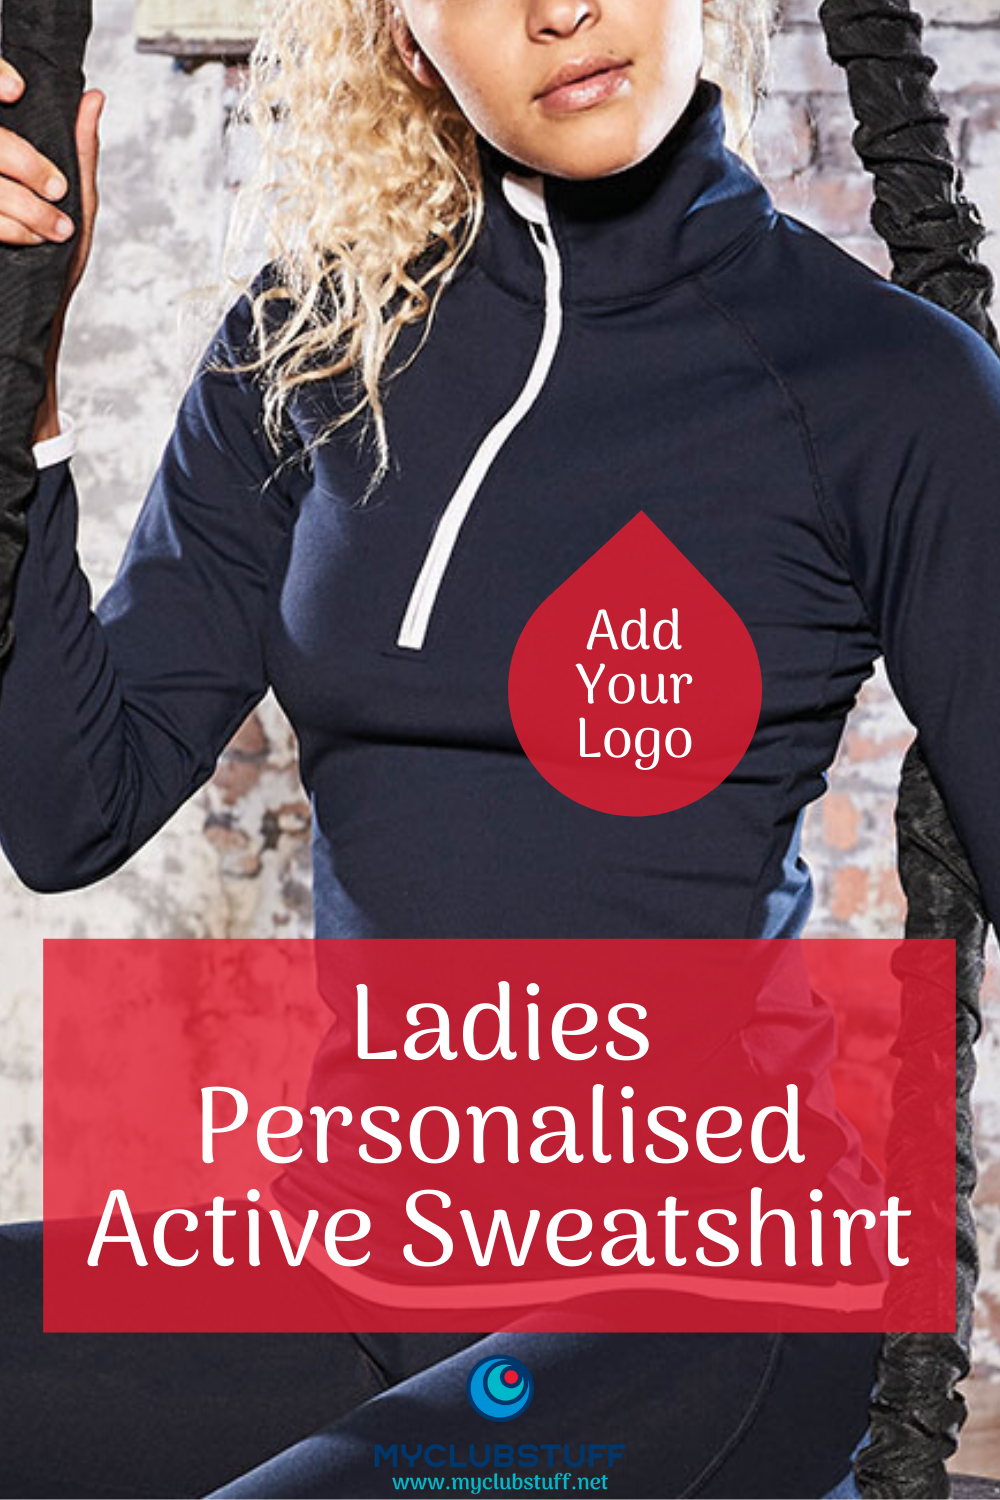 Ladies CoolFit fabric sweatshirt personalised with your logo or club crest.  Promotional products fo...